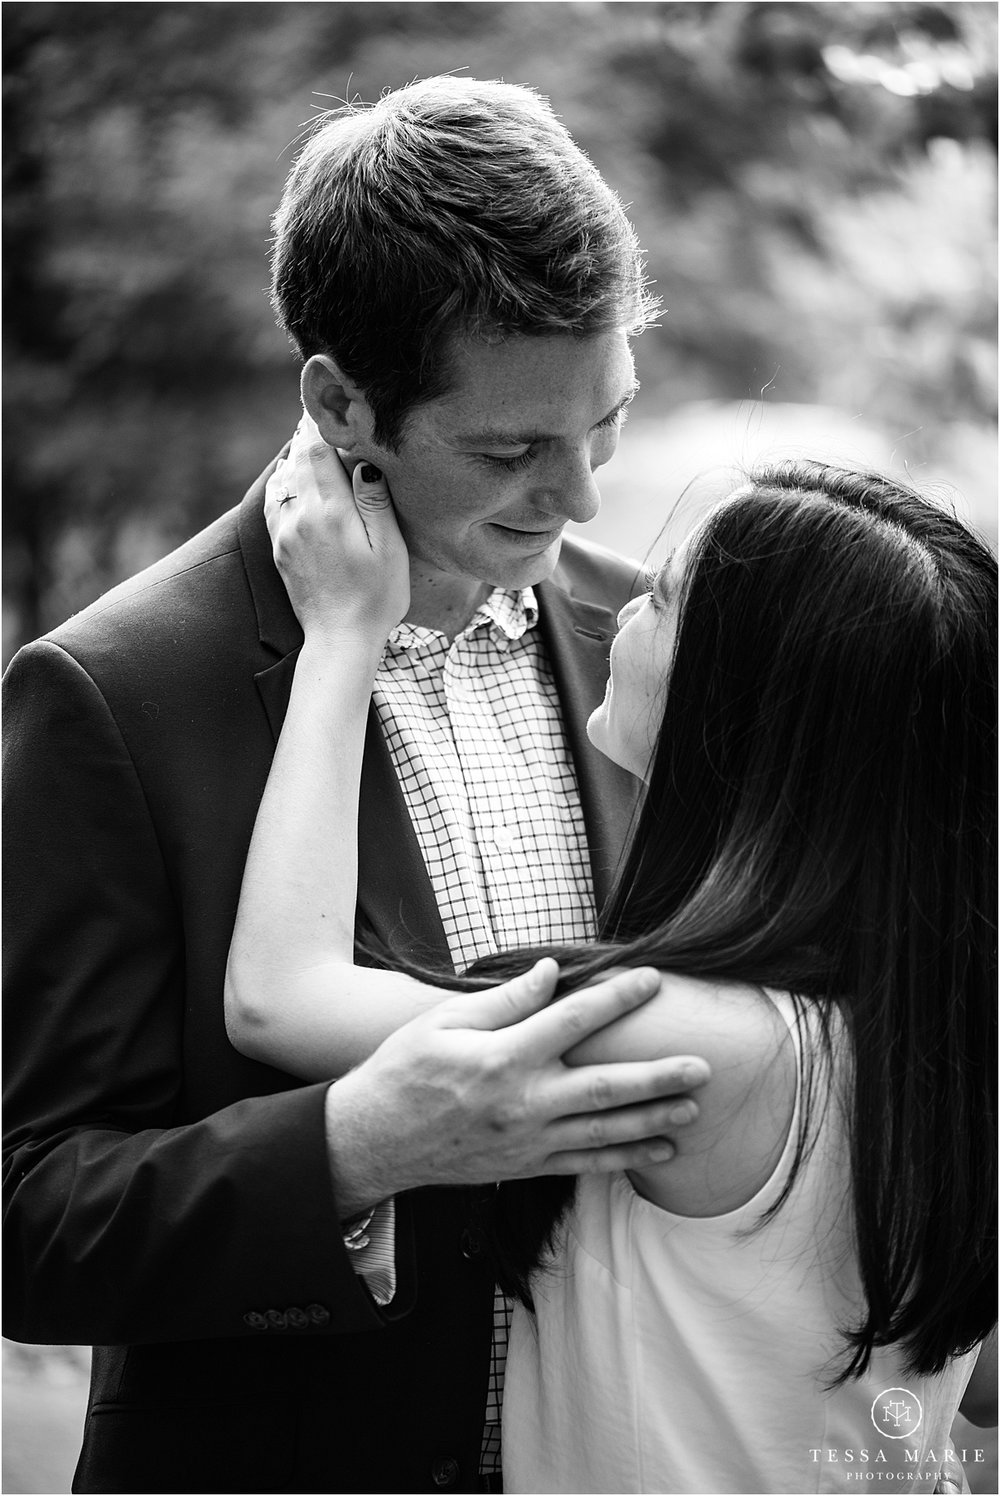 Tessa_marie_photography_wedding_photographer_engagement_pictures_piedmont_park_0050.jpg